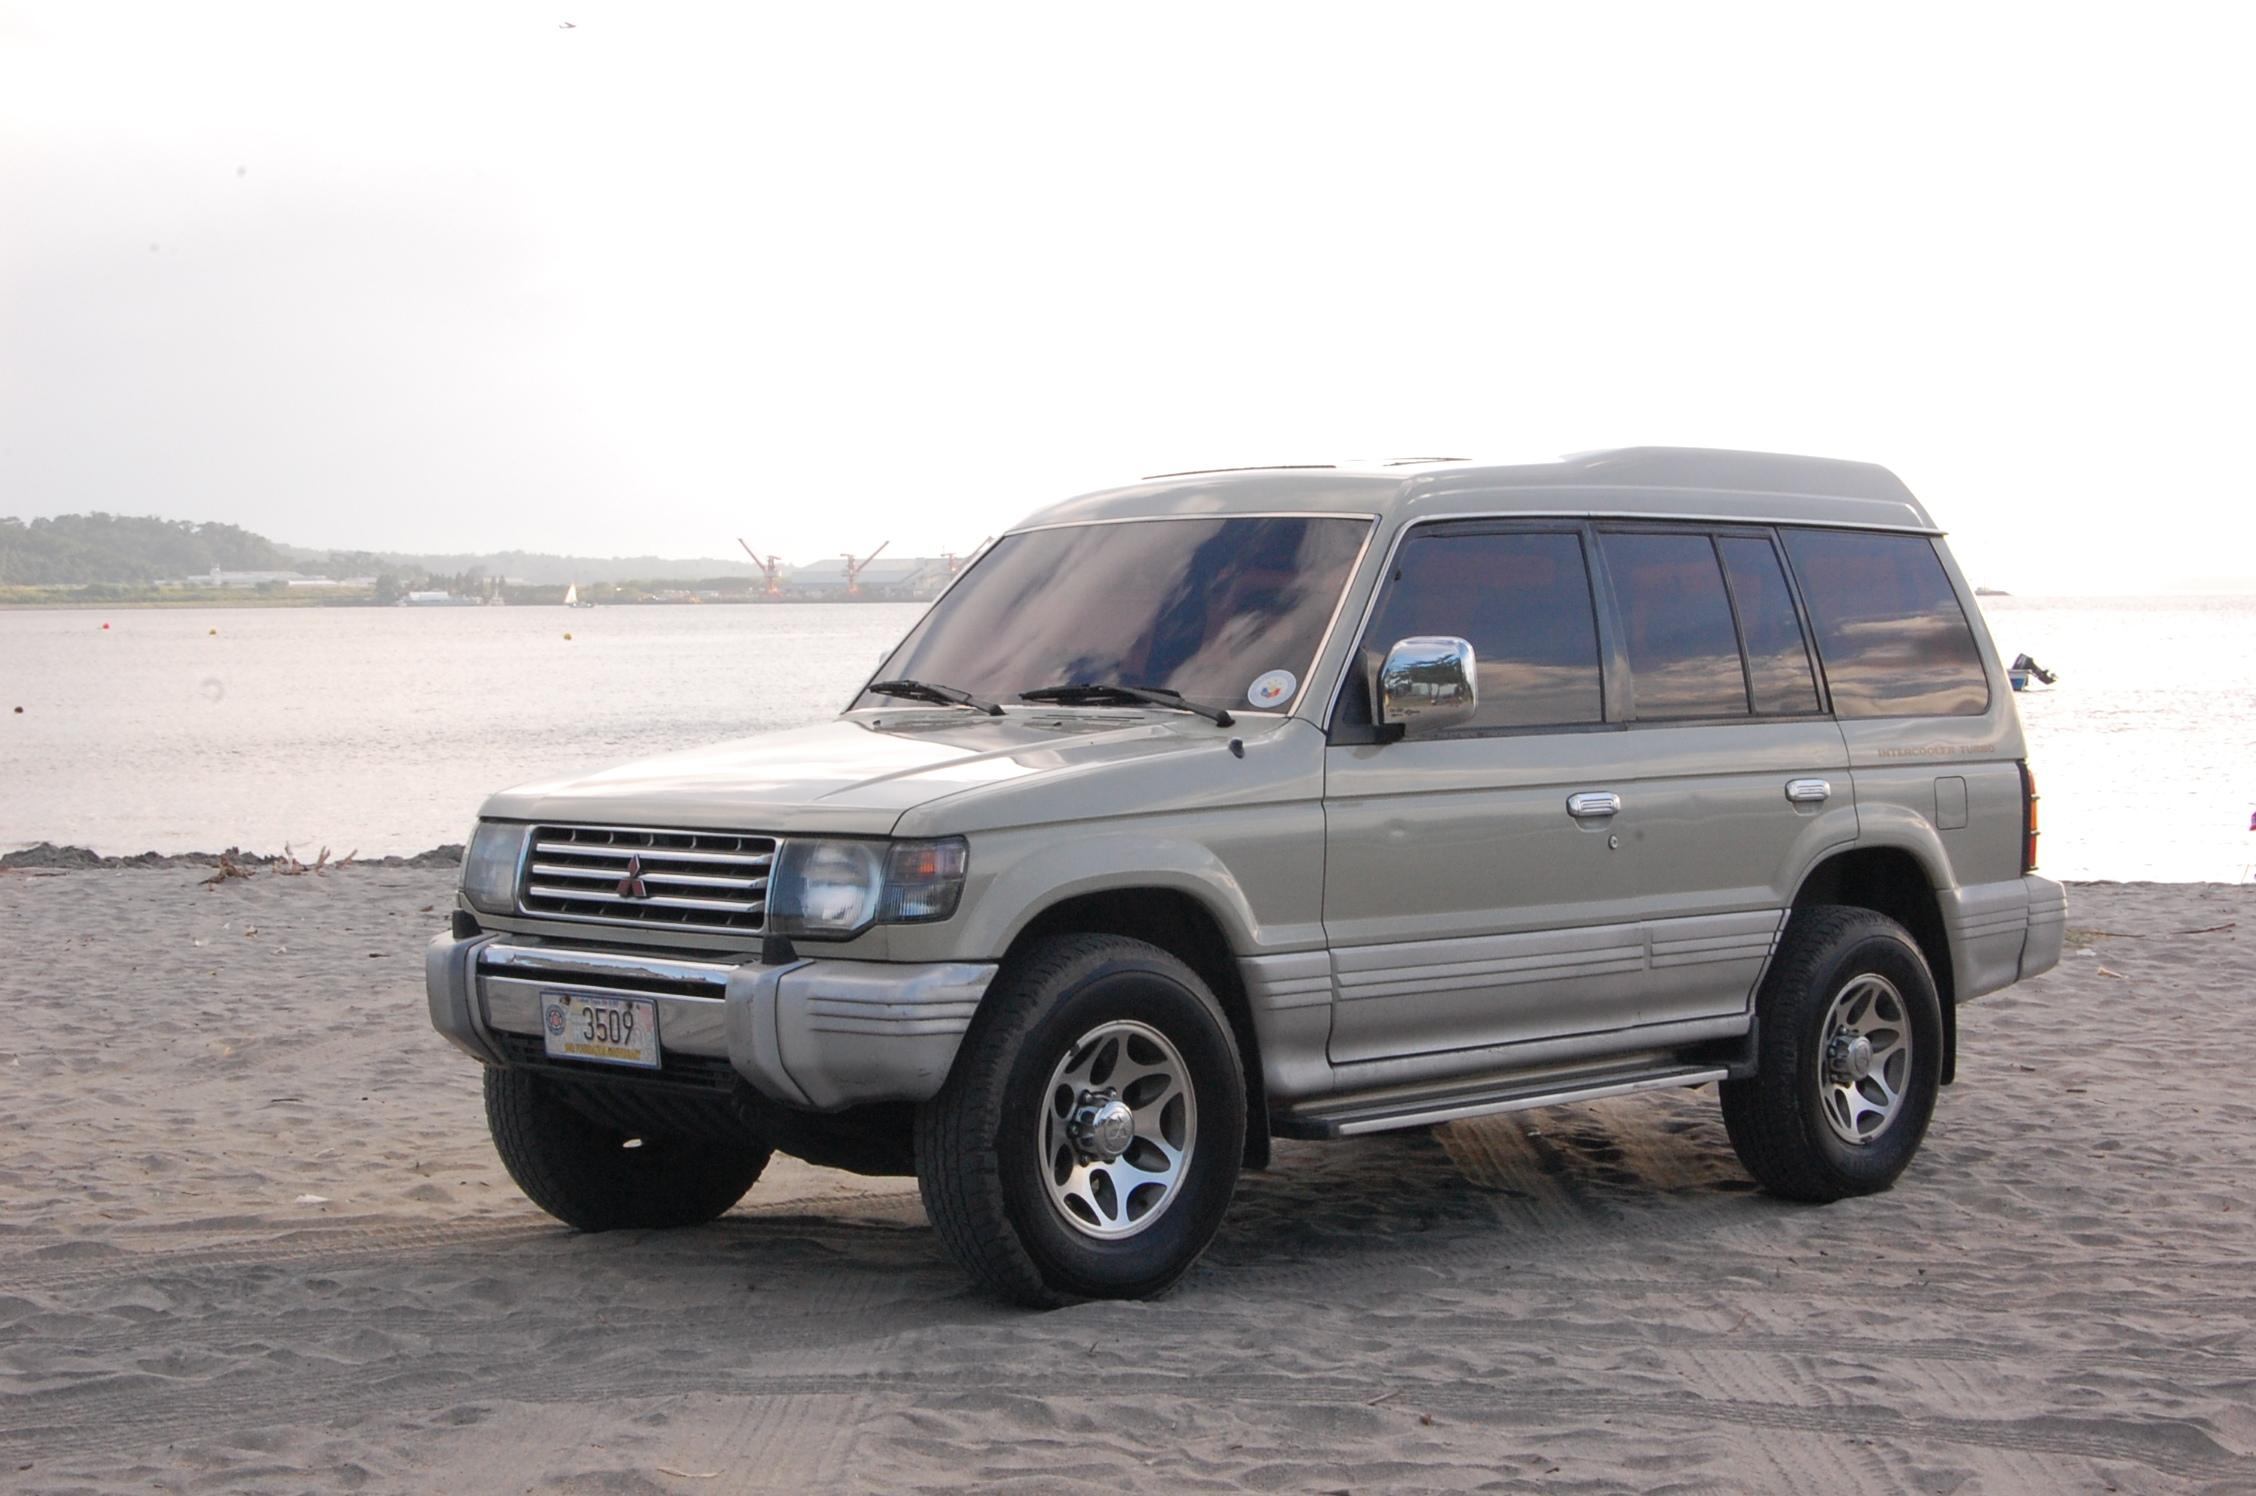 Jsbucoy 1998 Mitsubishi Pajero Specs Photos Modification